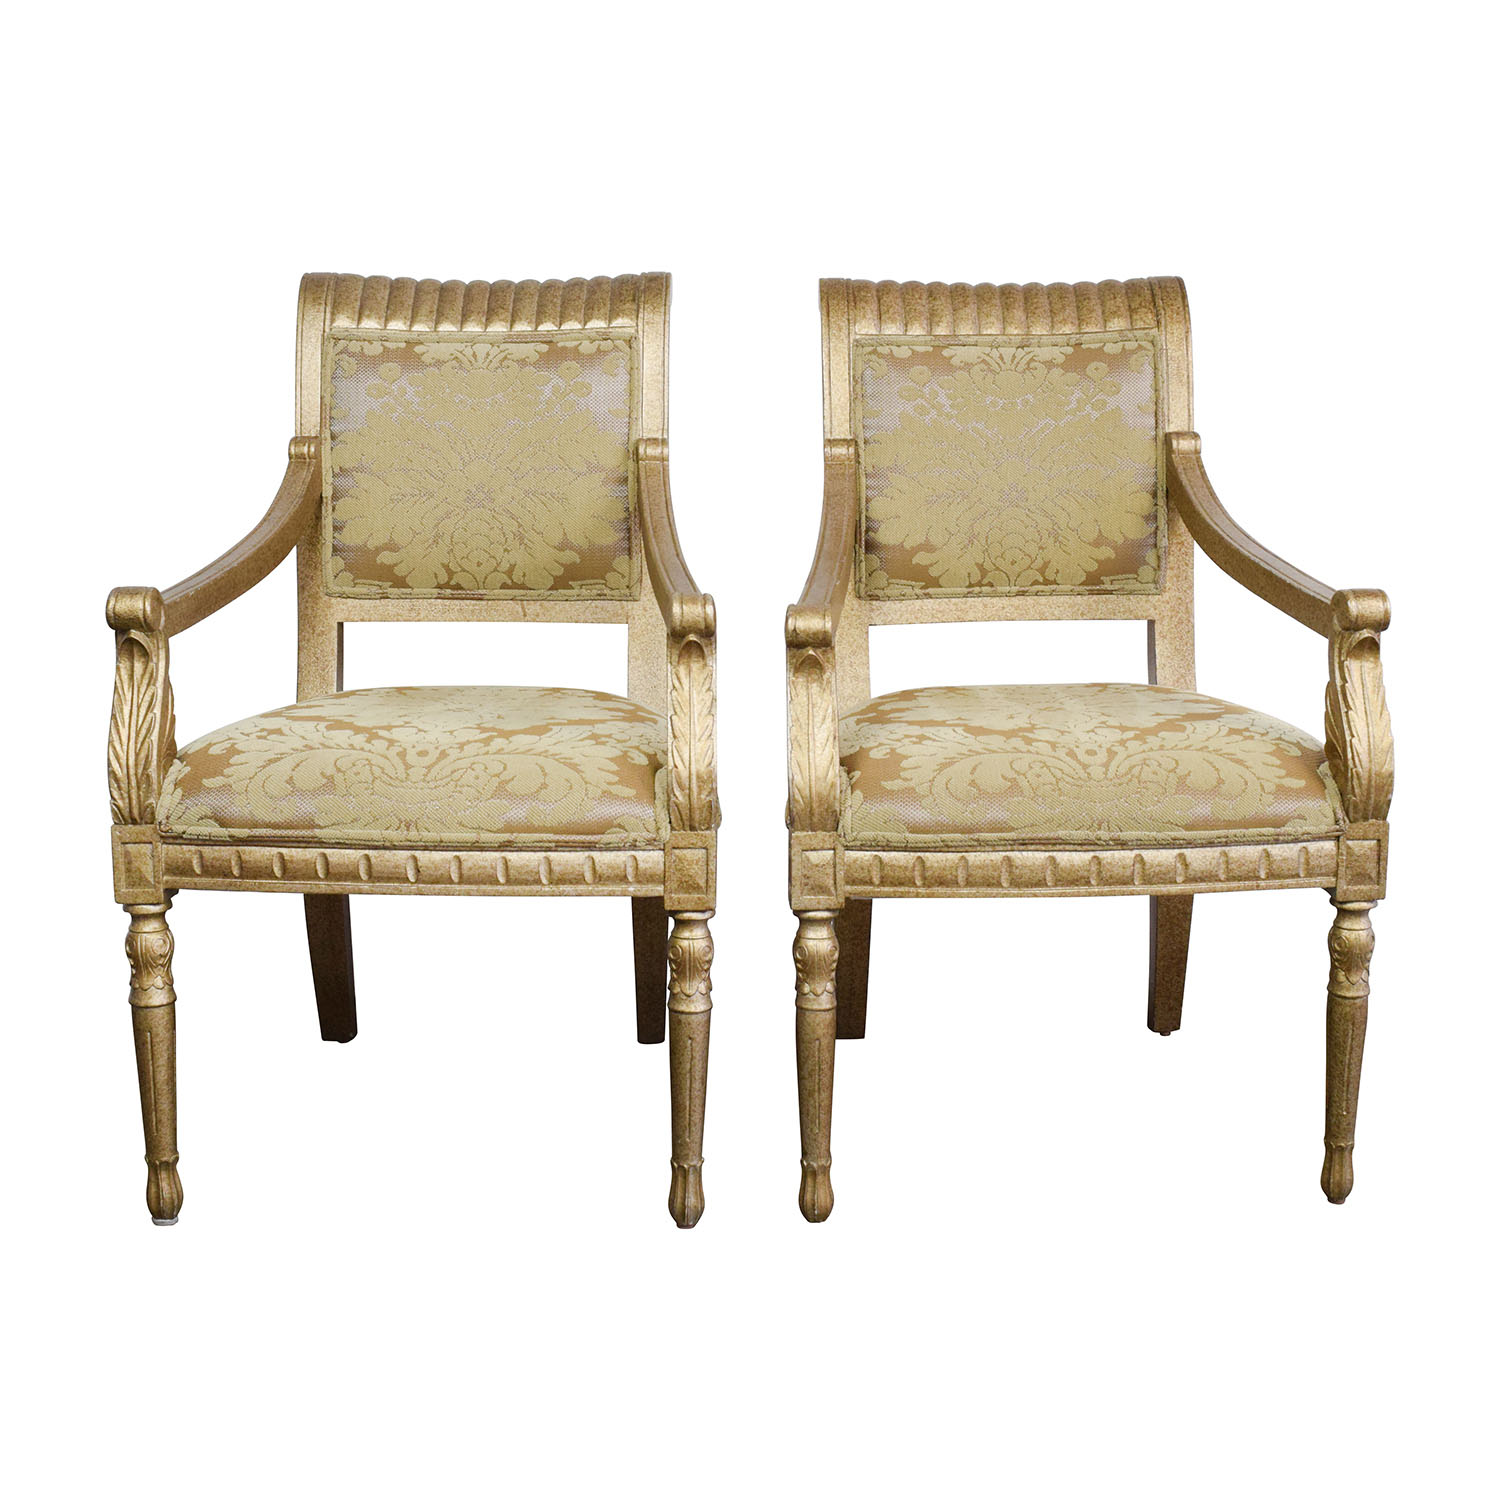 Swell 80 Off Rustic Gold Upholstered Arm Accent Chairs Chairs Gmtry Best Dining Table And Chair Ideas Images Gmtryco